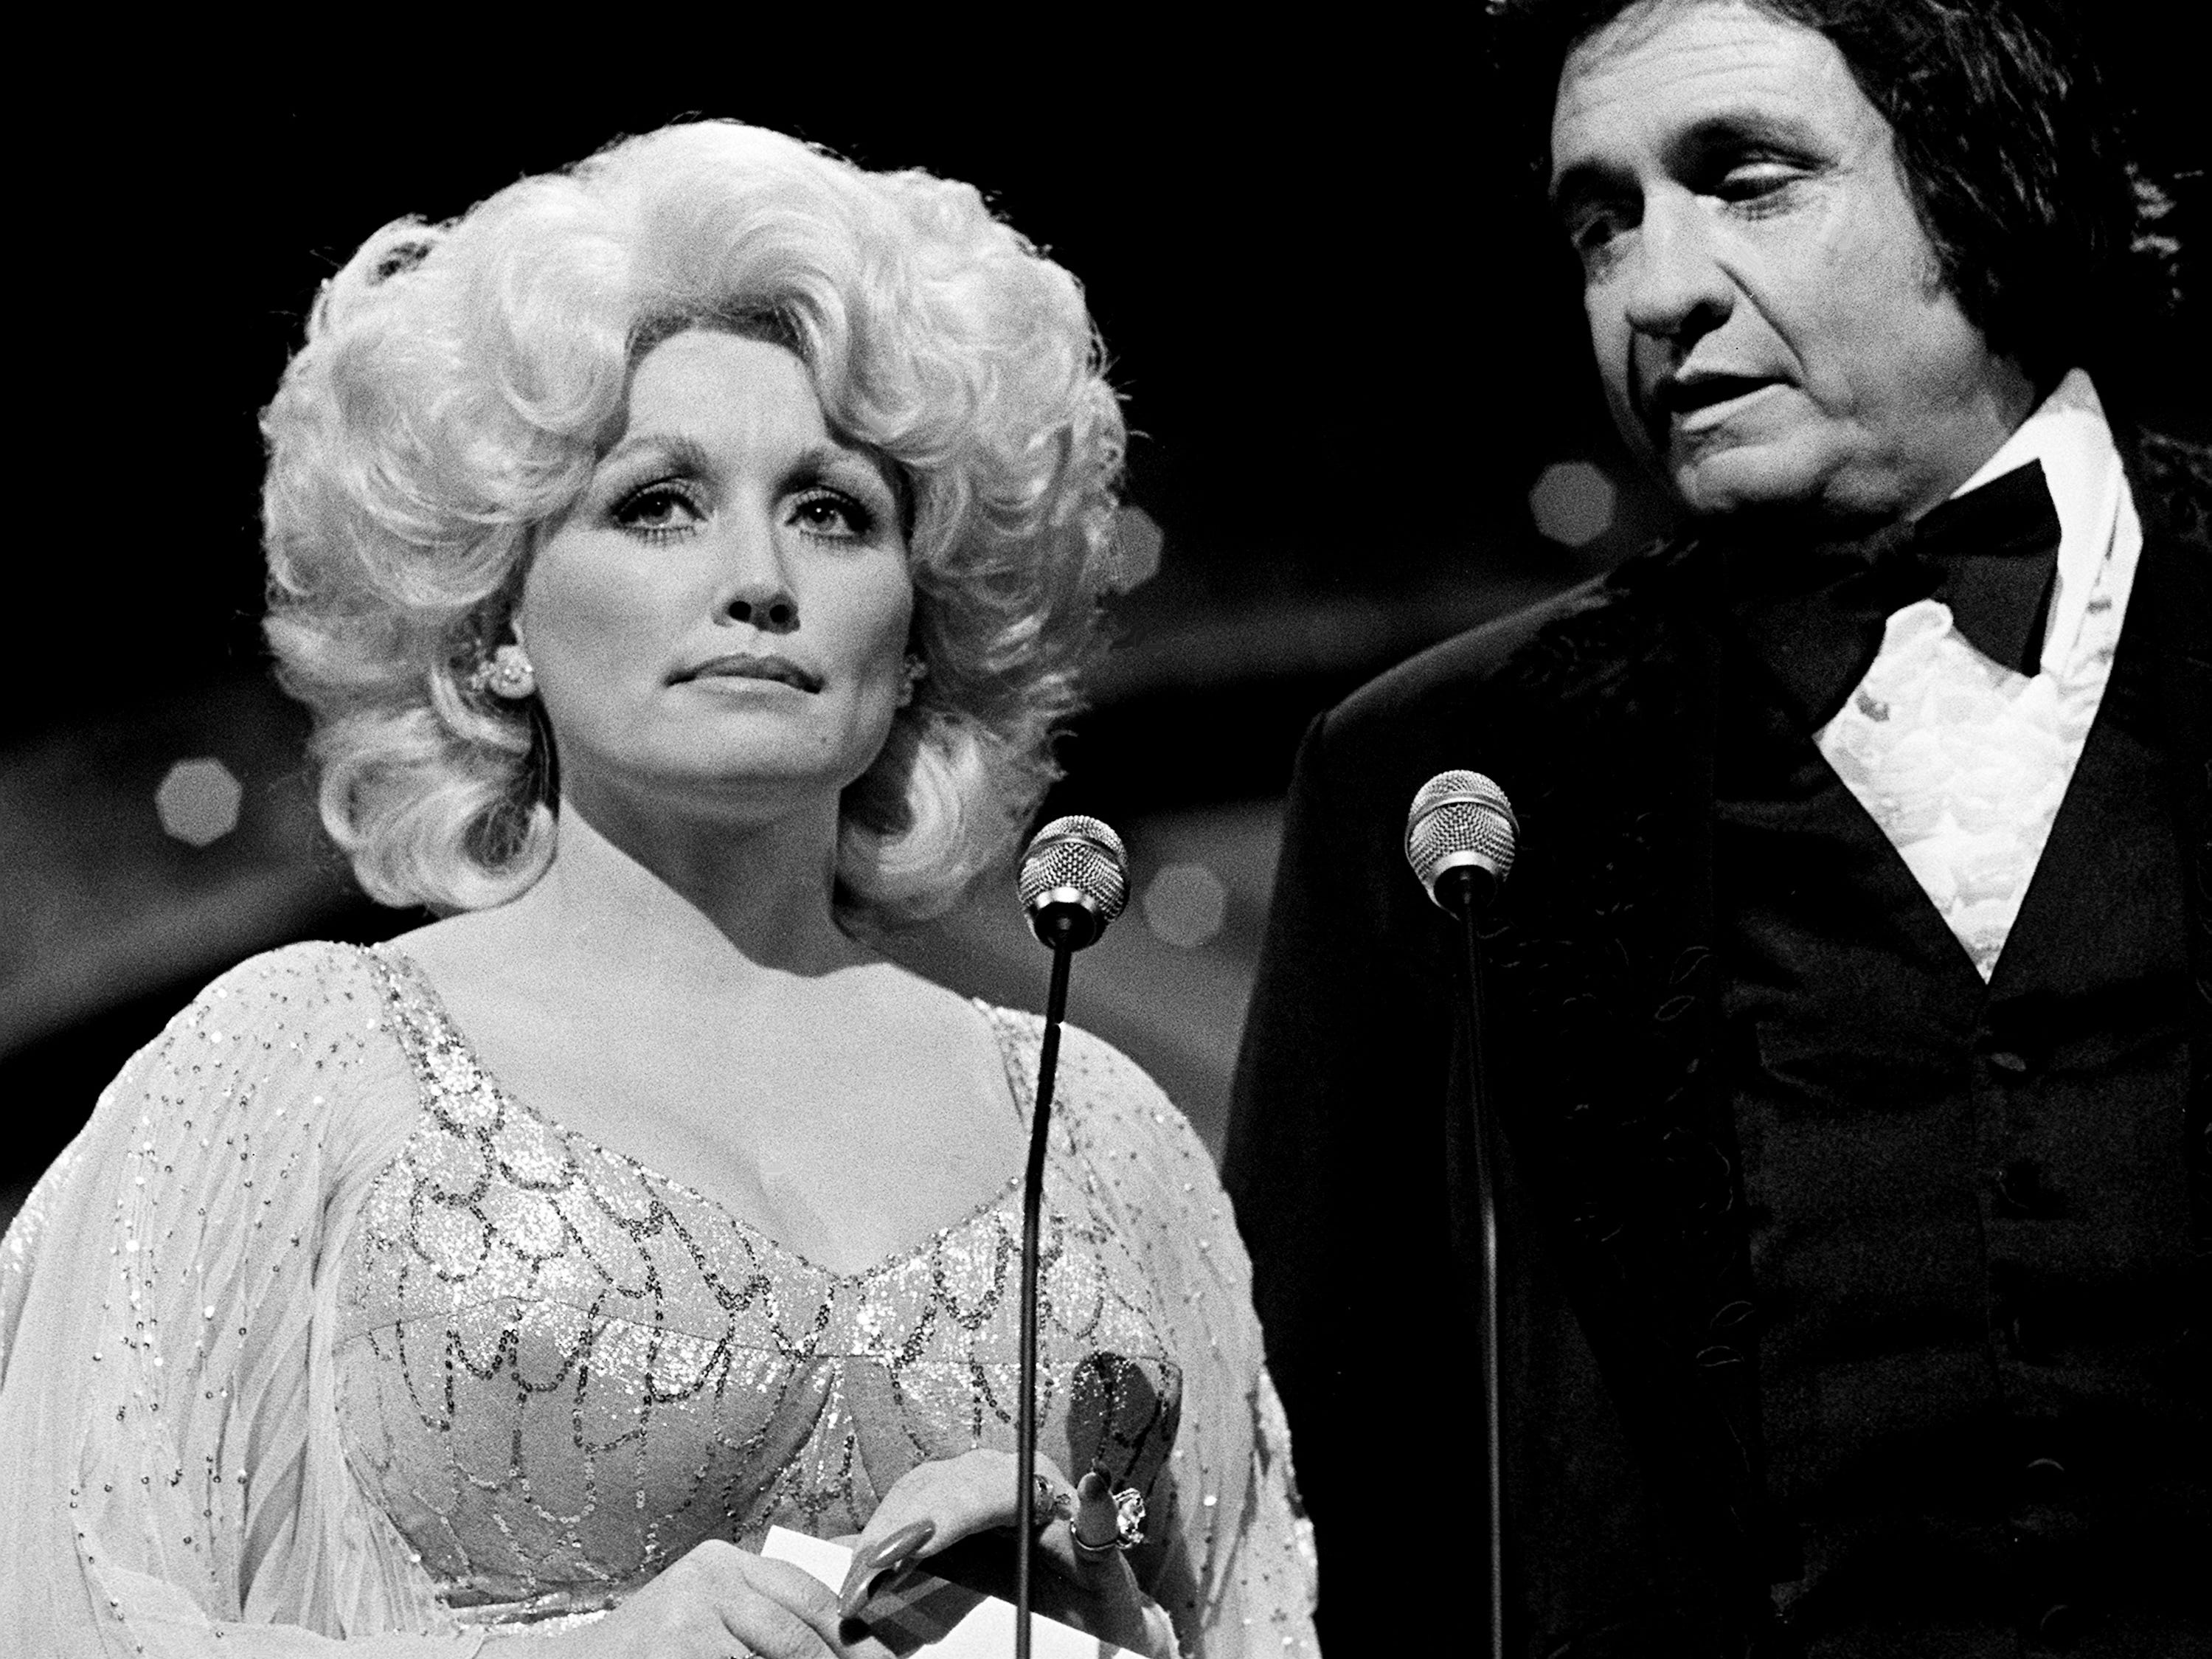 Dolly Parton and host Johnny Cash prepare to present the Male Vocalist of the Year award during the 12th annual CMA Awards show at the Grand Ole Opry House on Oct. 9, 1978.